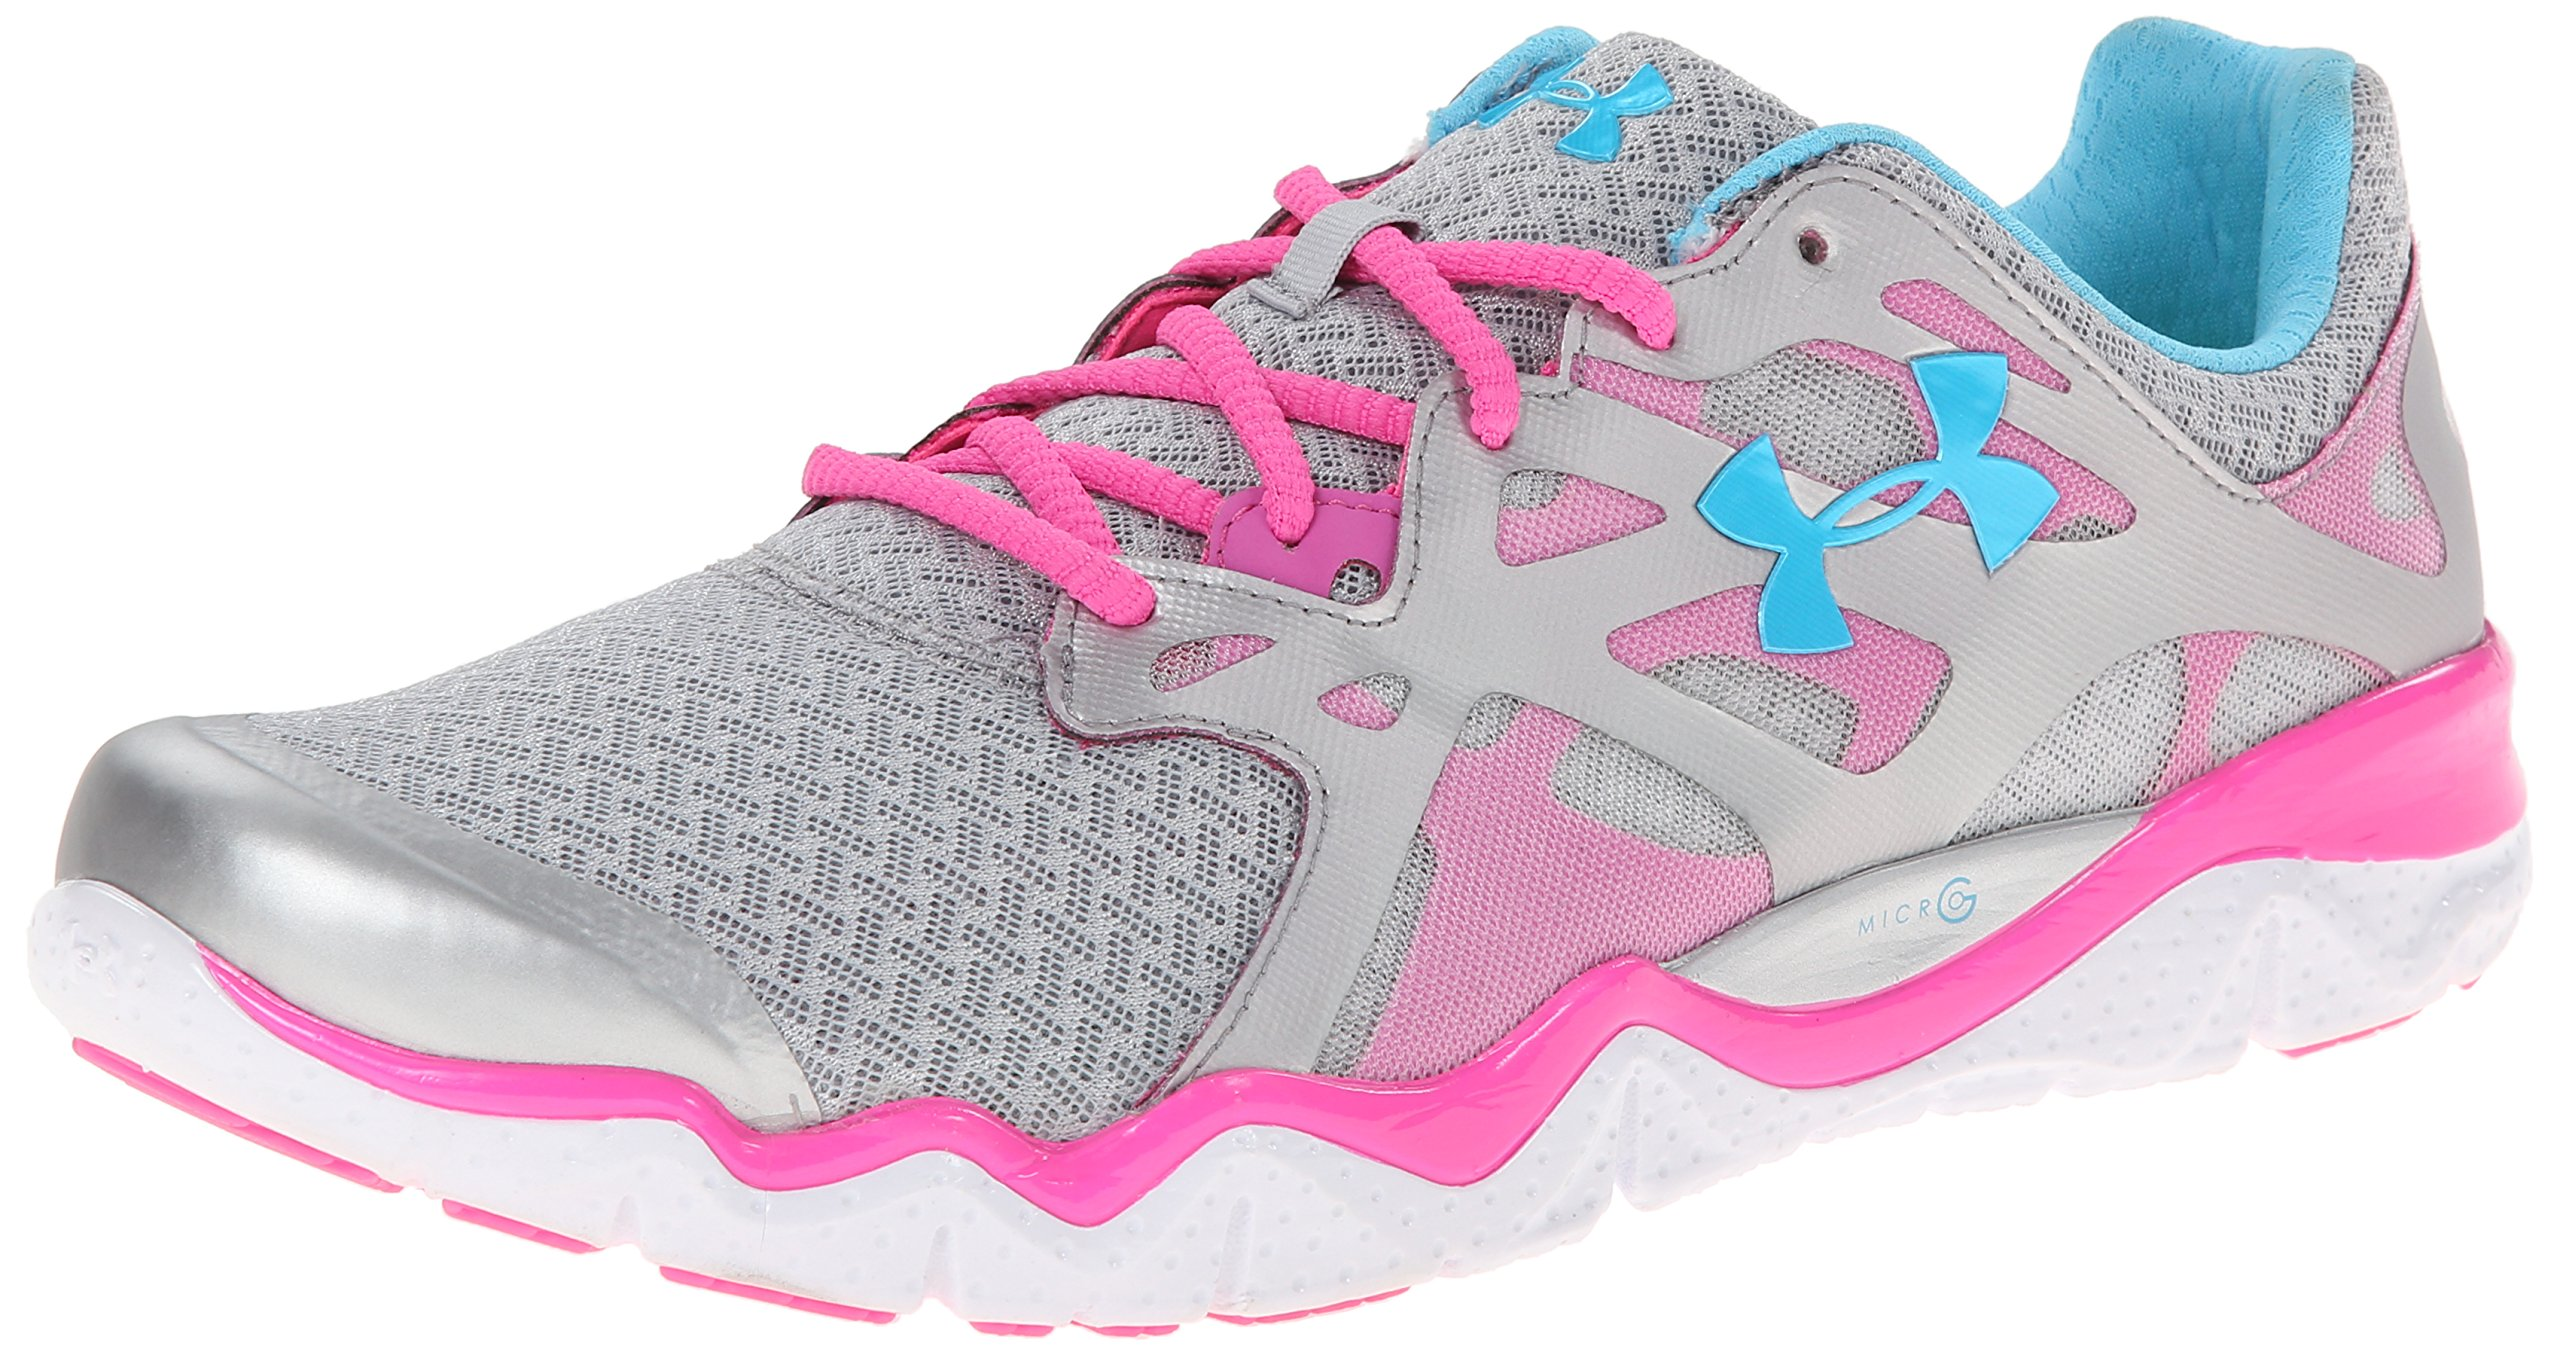 Under-Armour-Womens-Micro-G-Monza-Nm-Running-Shoes-Metallic-SilverPinkadelicPirate-Blue-12-B-Me